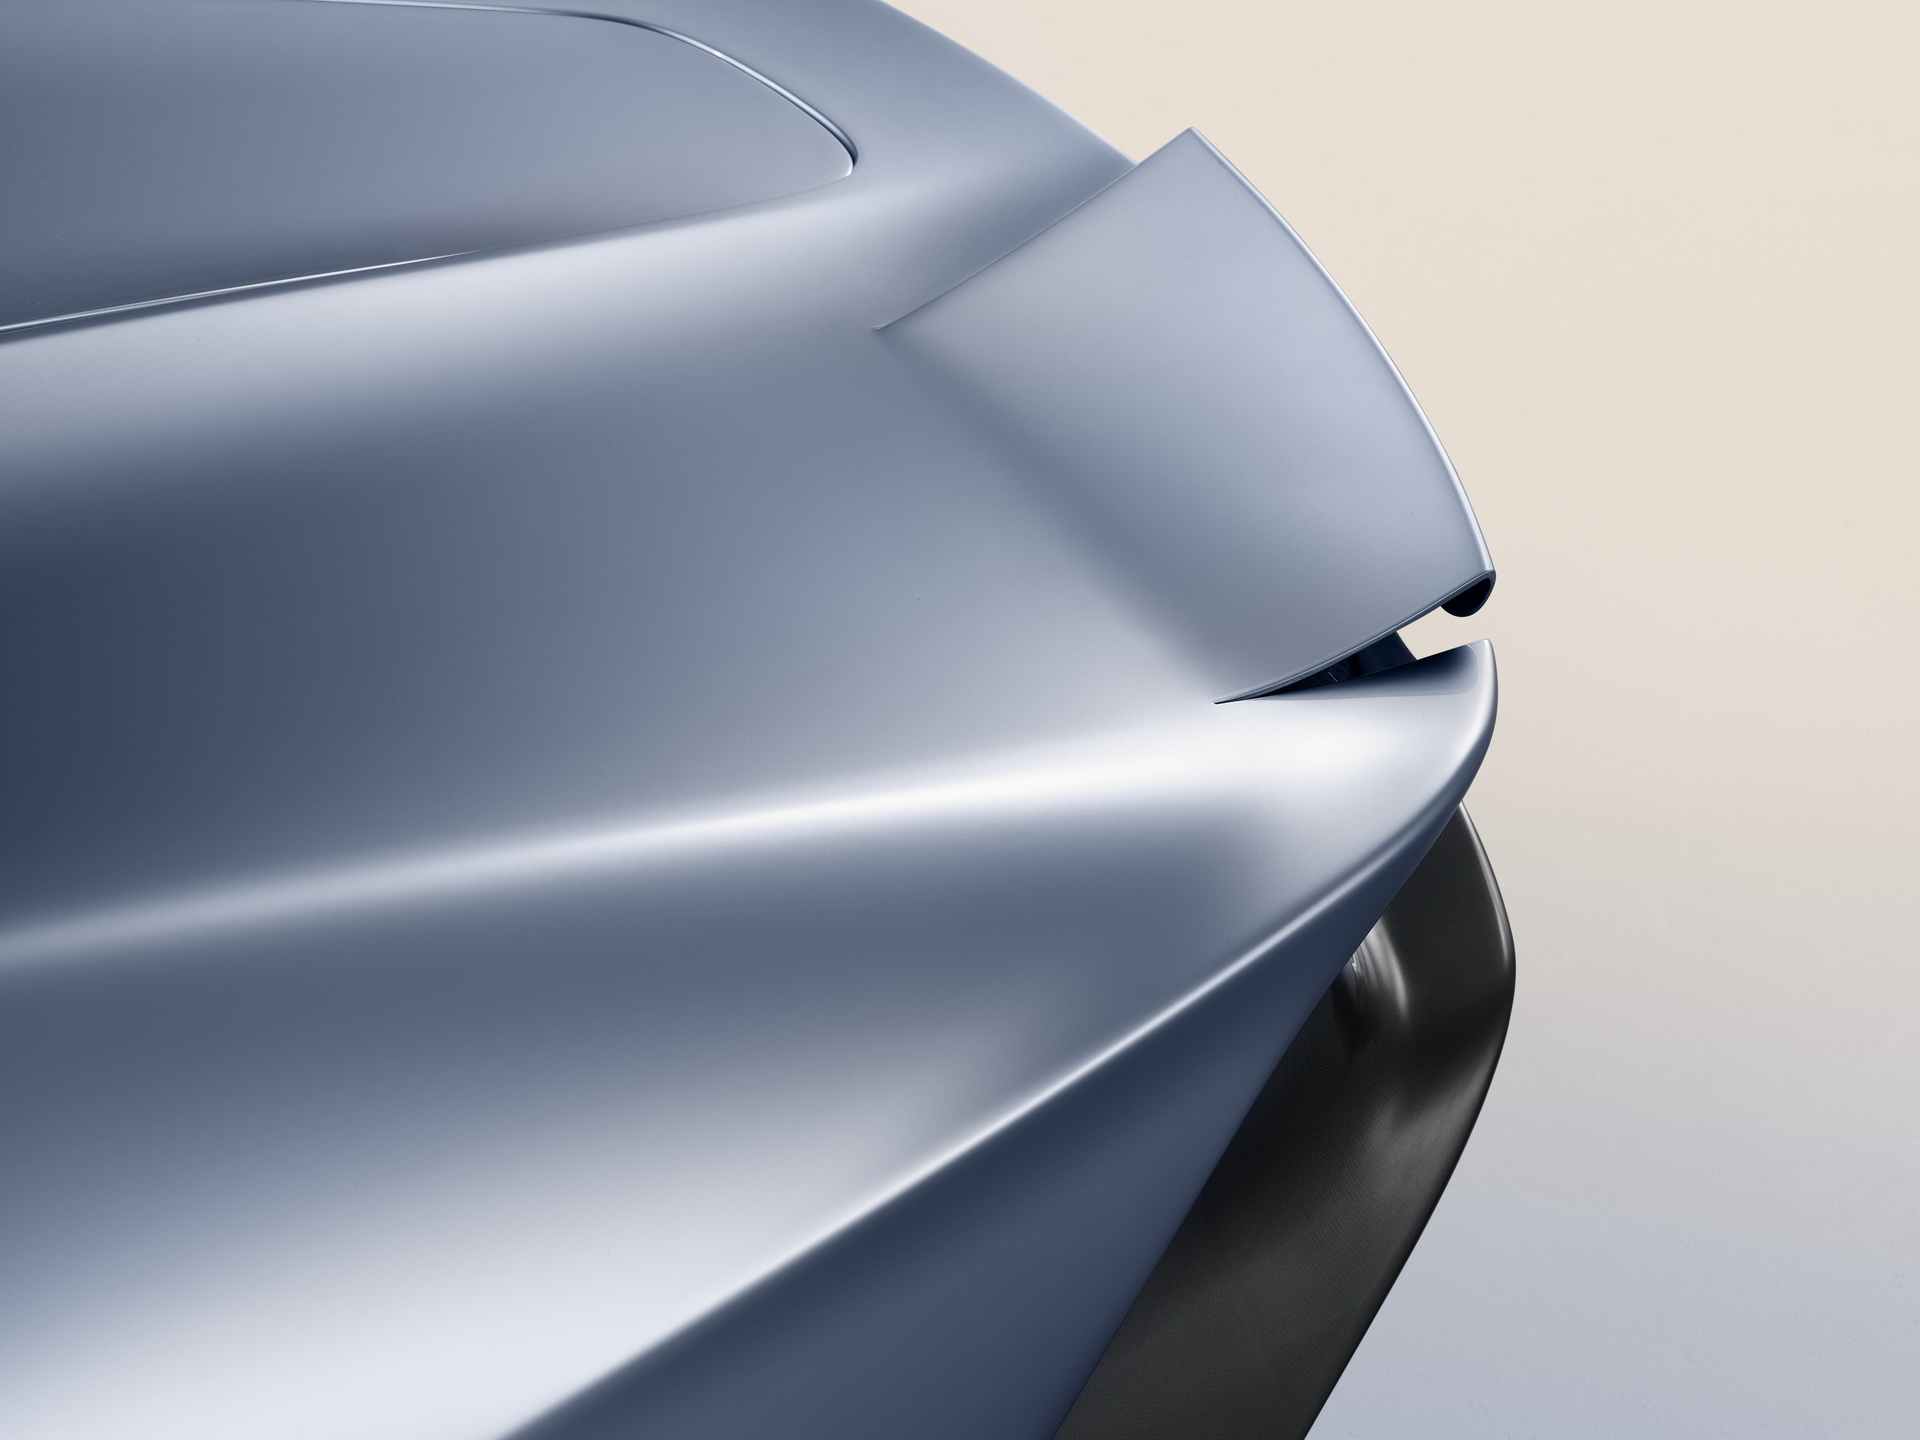 McLaren's new Speedtail is a hypercar gone with the wind